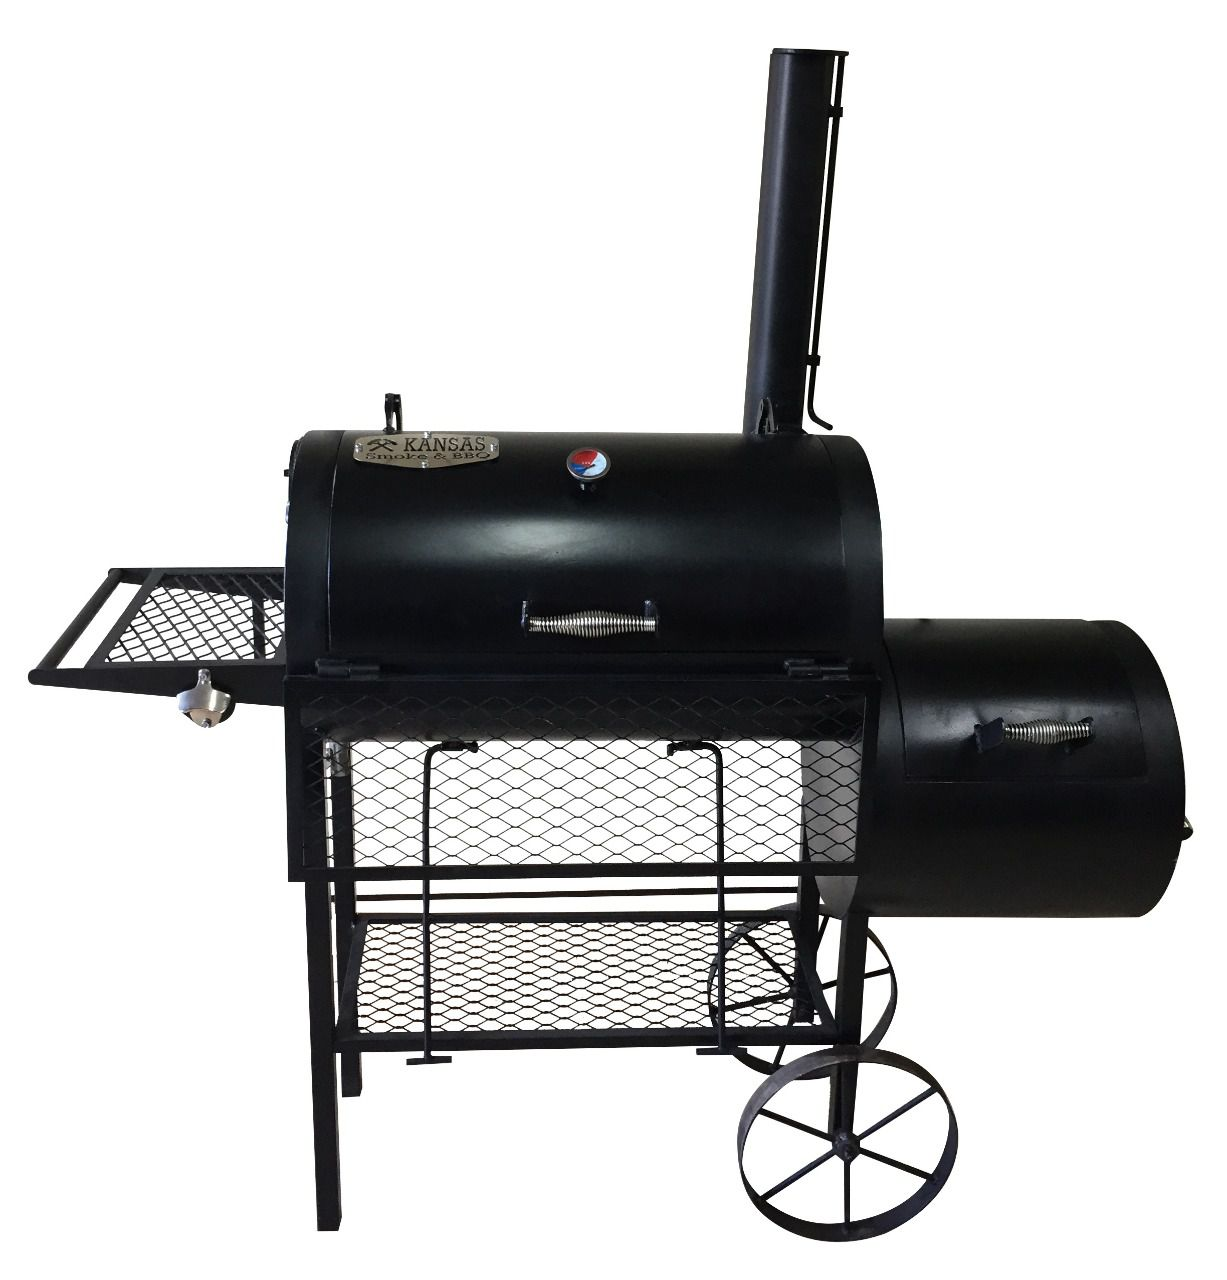 PIT SMOKER DOUBLE FLOW 700